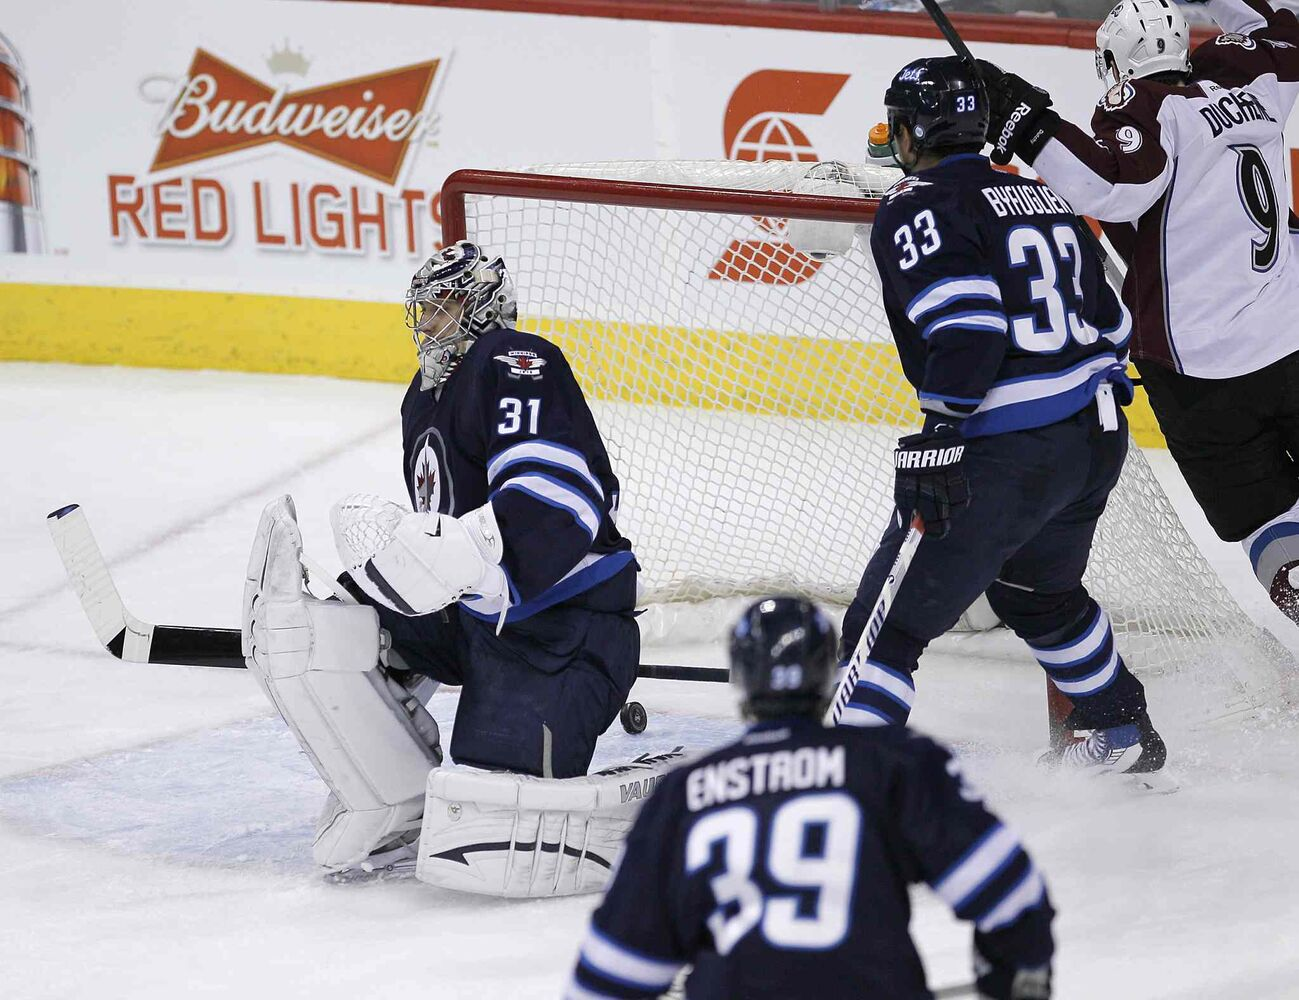 Colorado Avalanche's Matt Duchene (right) scores on Winnipeg Jets goaltender Ondrej Pavelec (left) as Jets defencemen Dustin Byfuglien (centre right) and Tobias Enstrom (right) looks on at the end of the first period. (JOHN WOODS / THE CANADIAN PRESS)